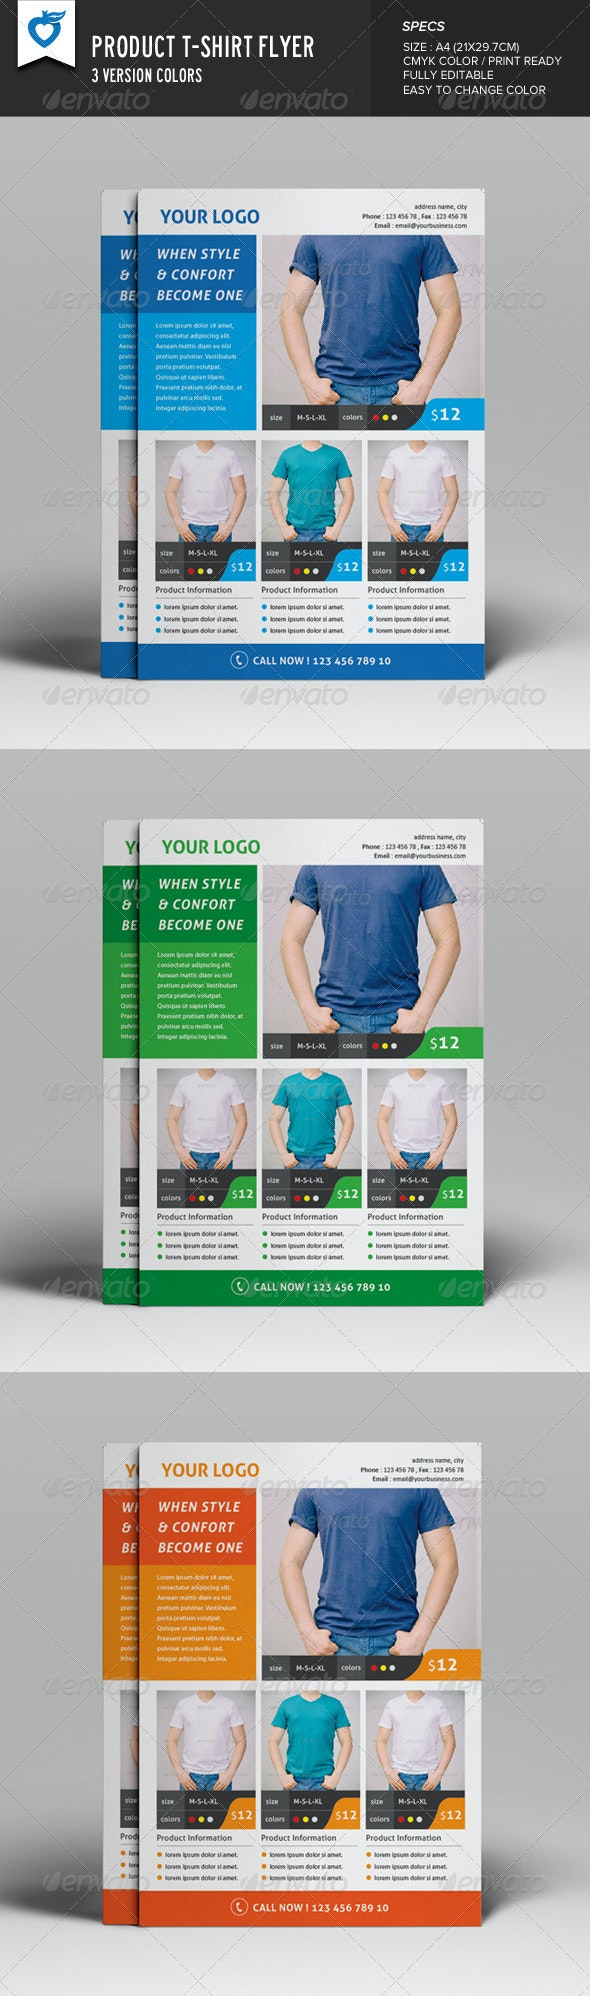 Product T-shirt Flyer - Commerce Flyers